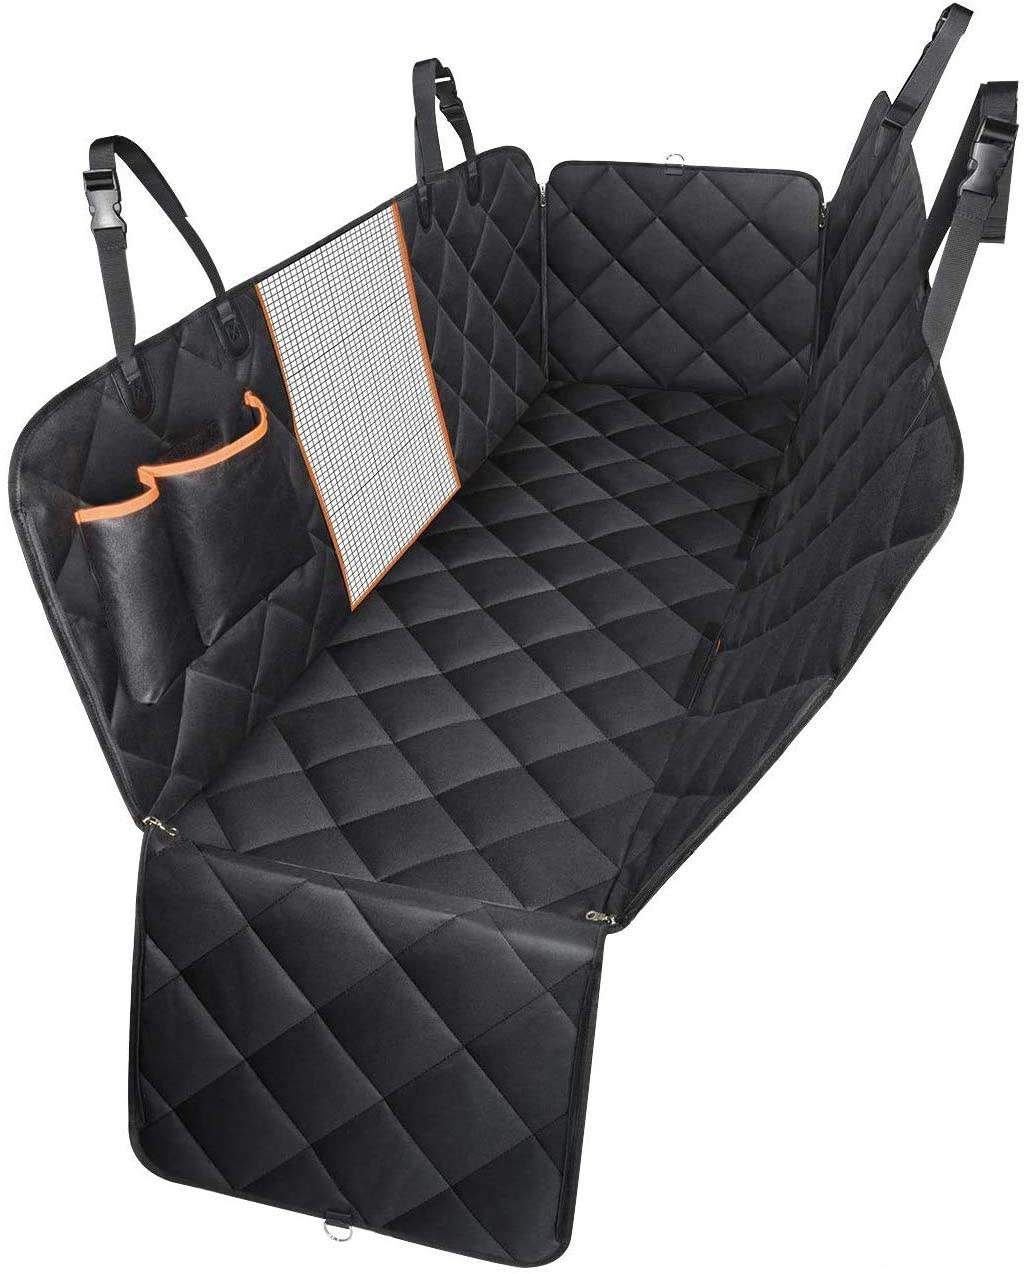 Groothandel Fabrikant Grote Zwarte Waterdichte Opvouwbare Wasbare Carrier Hond Auto Seat Cover